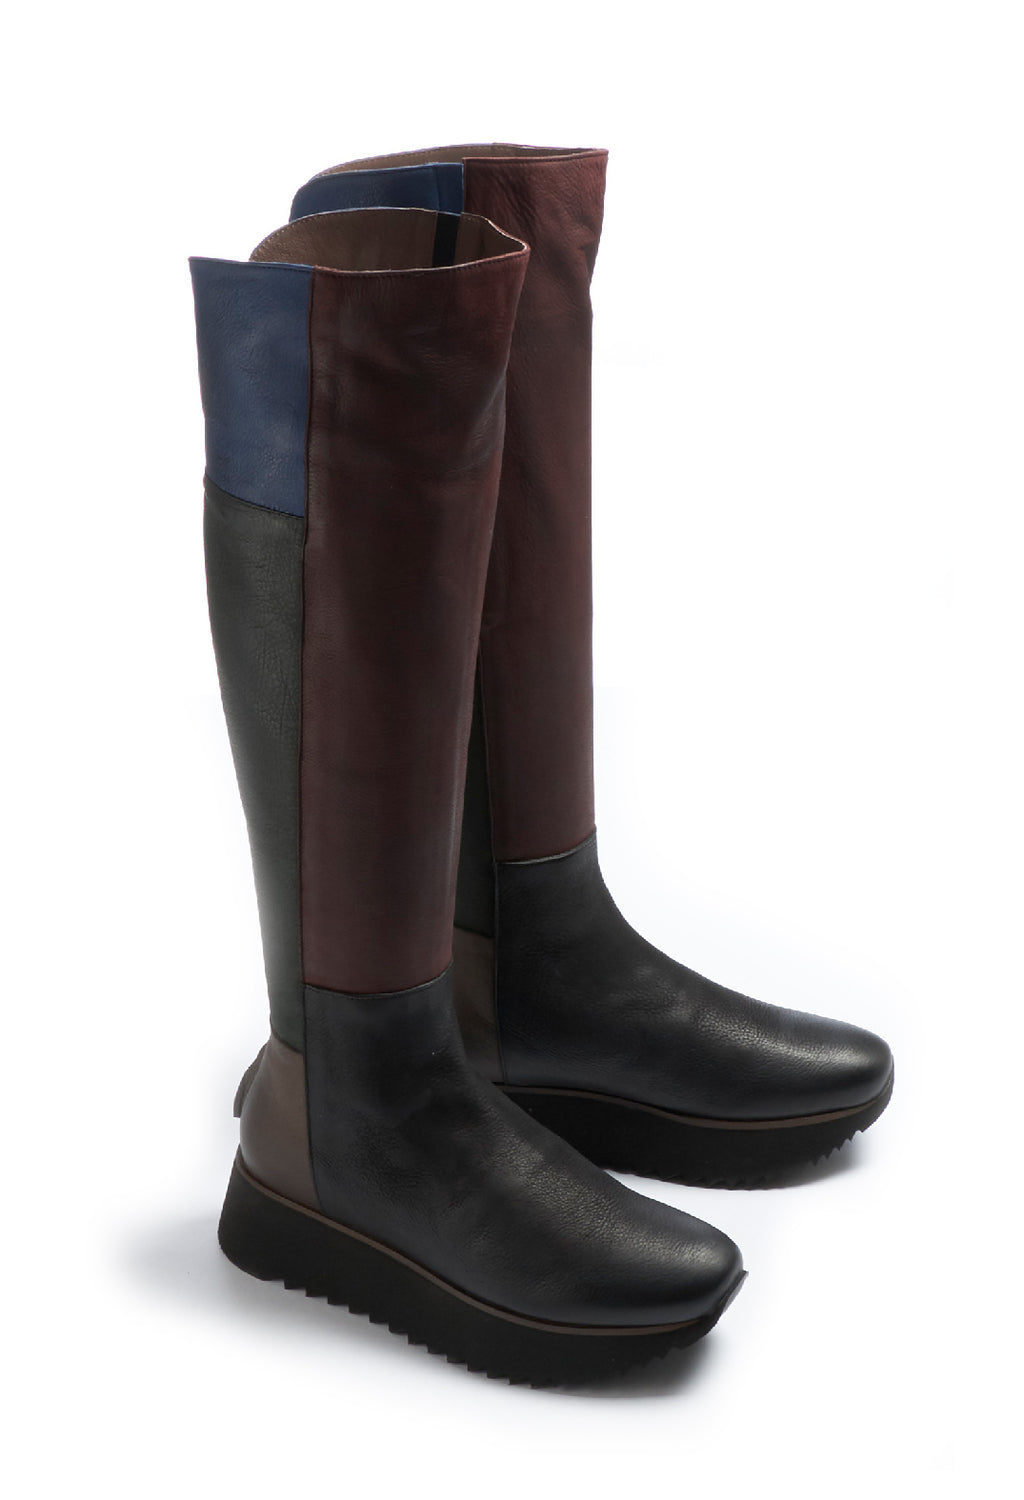 Leather Knee High Boots in Gasoline Nero / Gasoline Bottle